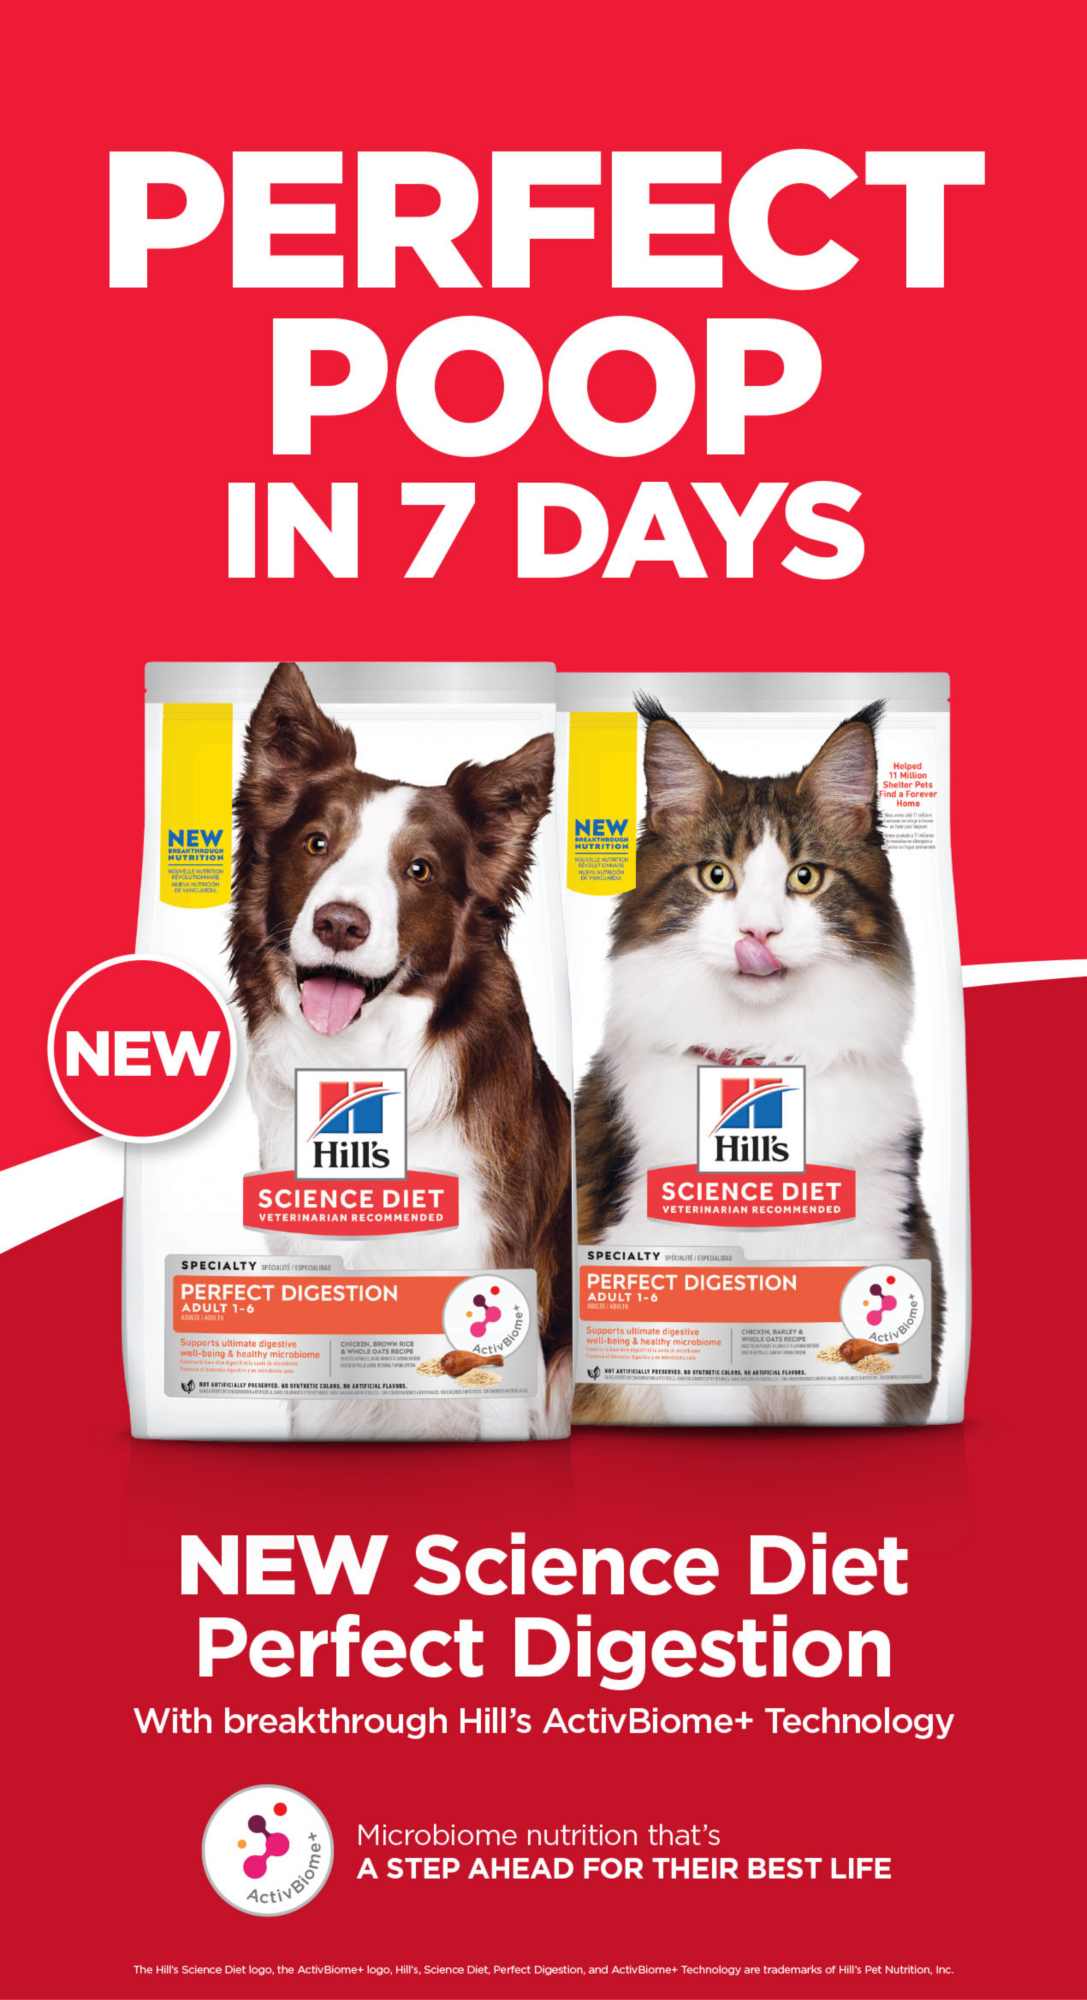 PERFECT POOP IN 7 DAYS                         NEW Science Diet Perfect Digestion                         With breakthrough Hill's ActivBiome+ Technology                                                  Microbiome nutrition that's A STEP AHEAD FOR THEIR BEST LIFE